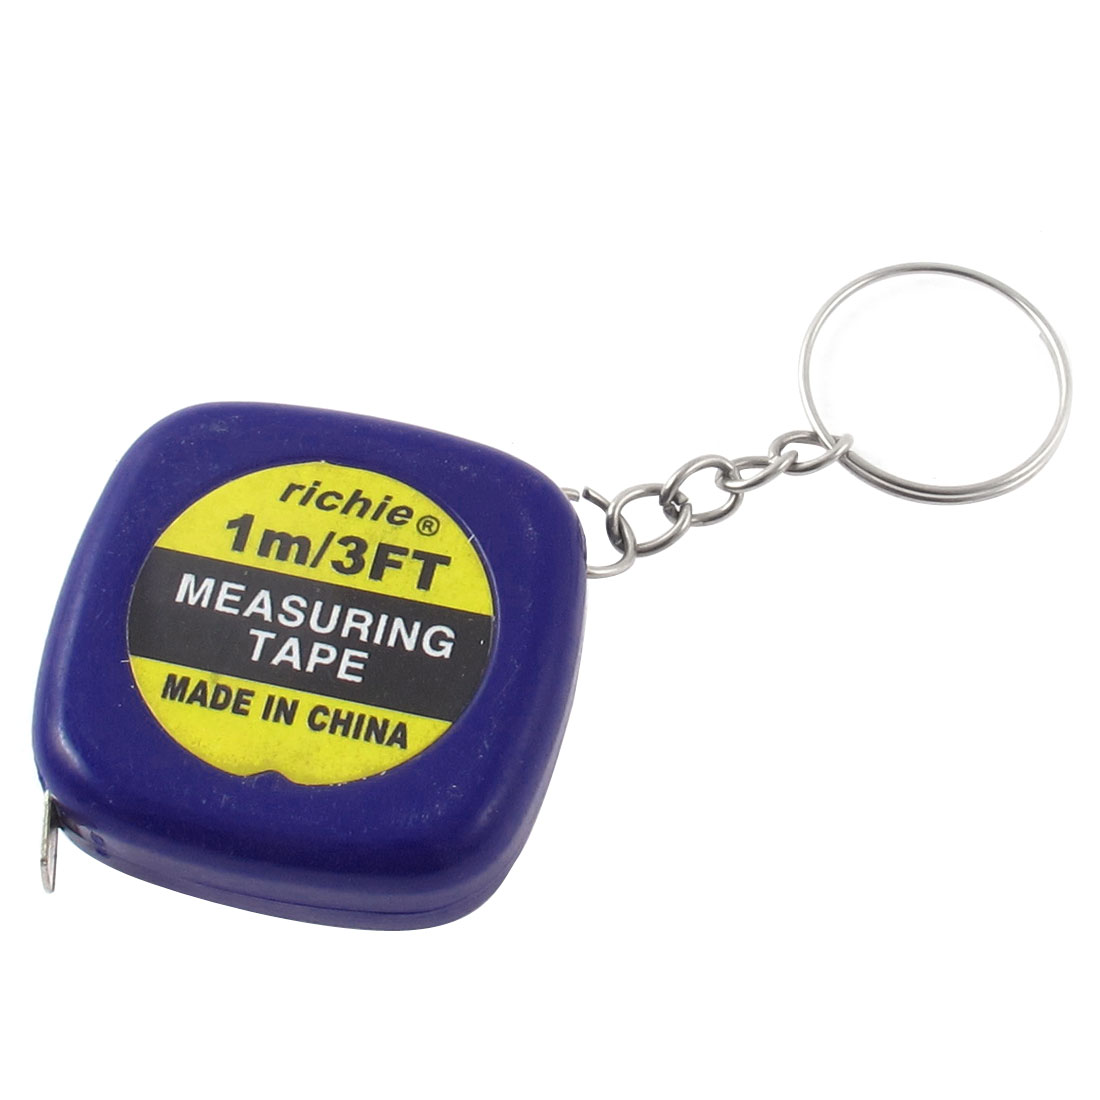 Blue Square Keychain Retractable Steel Ruler Mini Tape Measure 1M/3Ft/40Inch